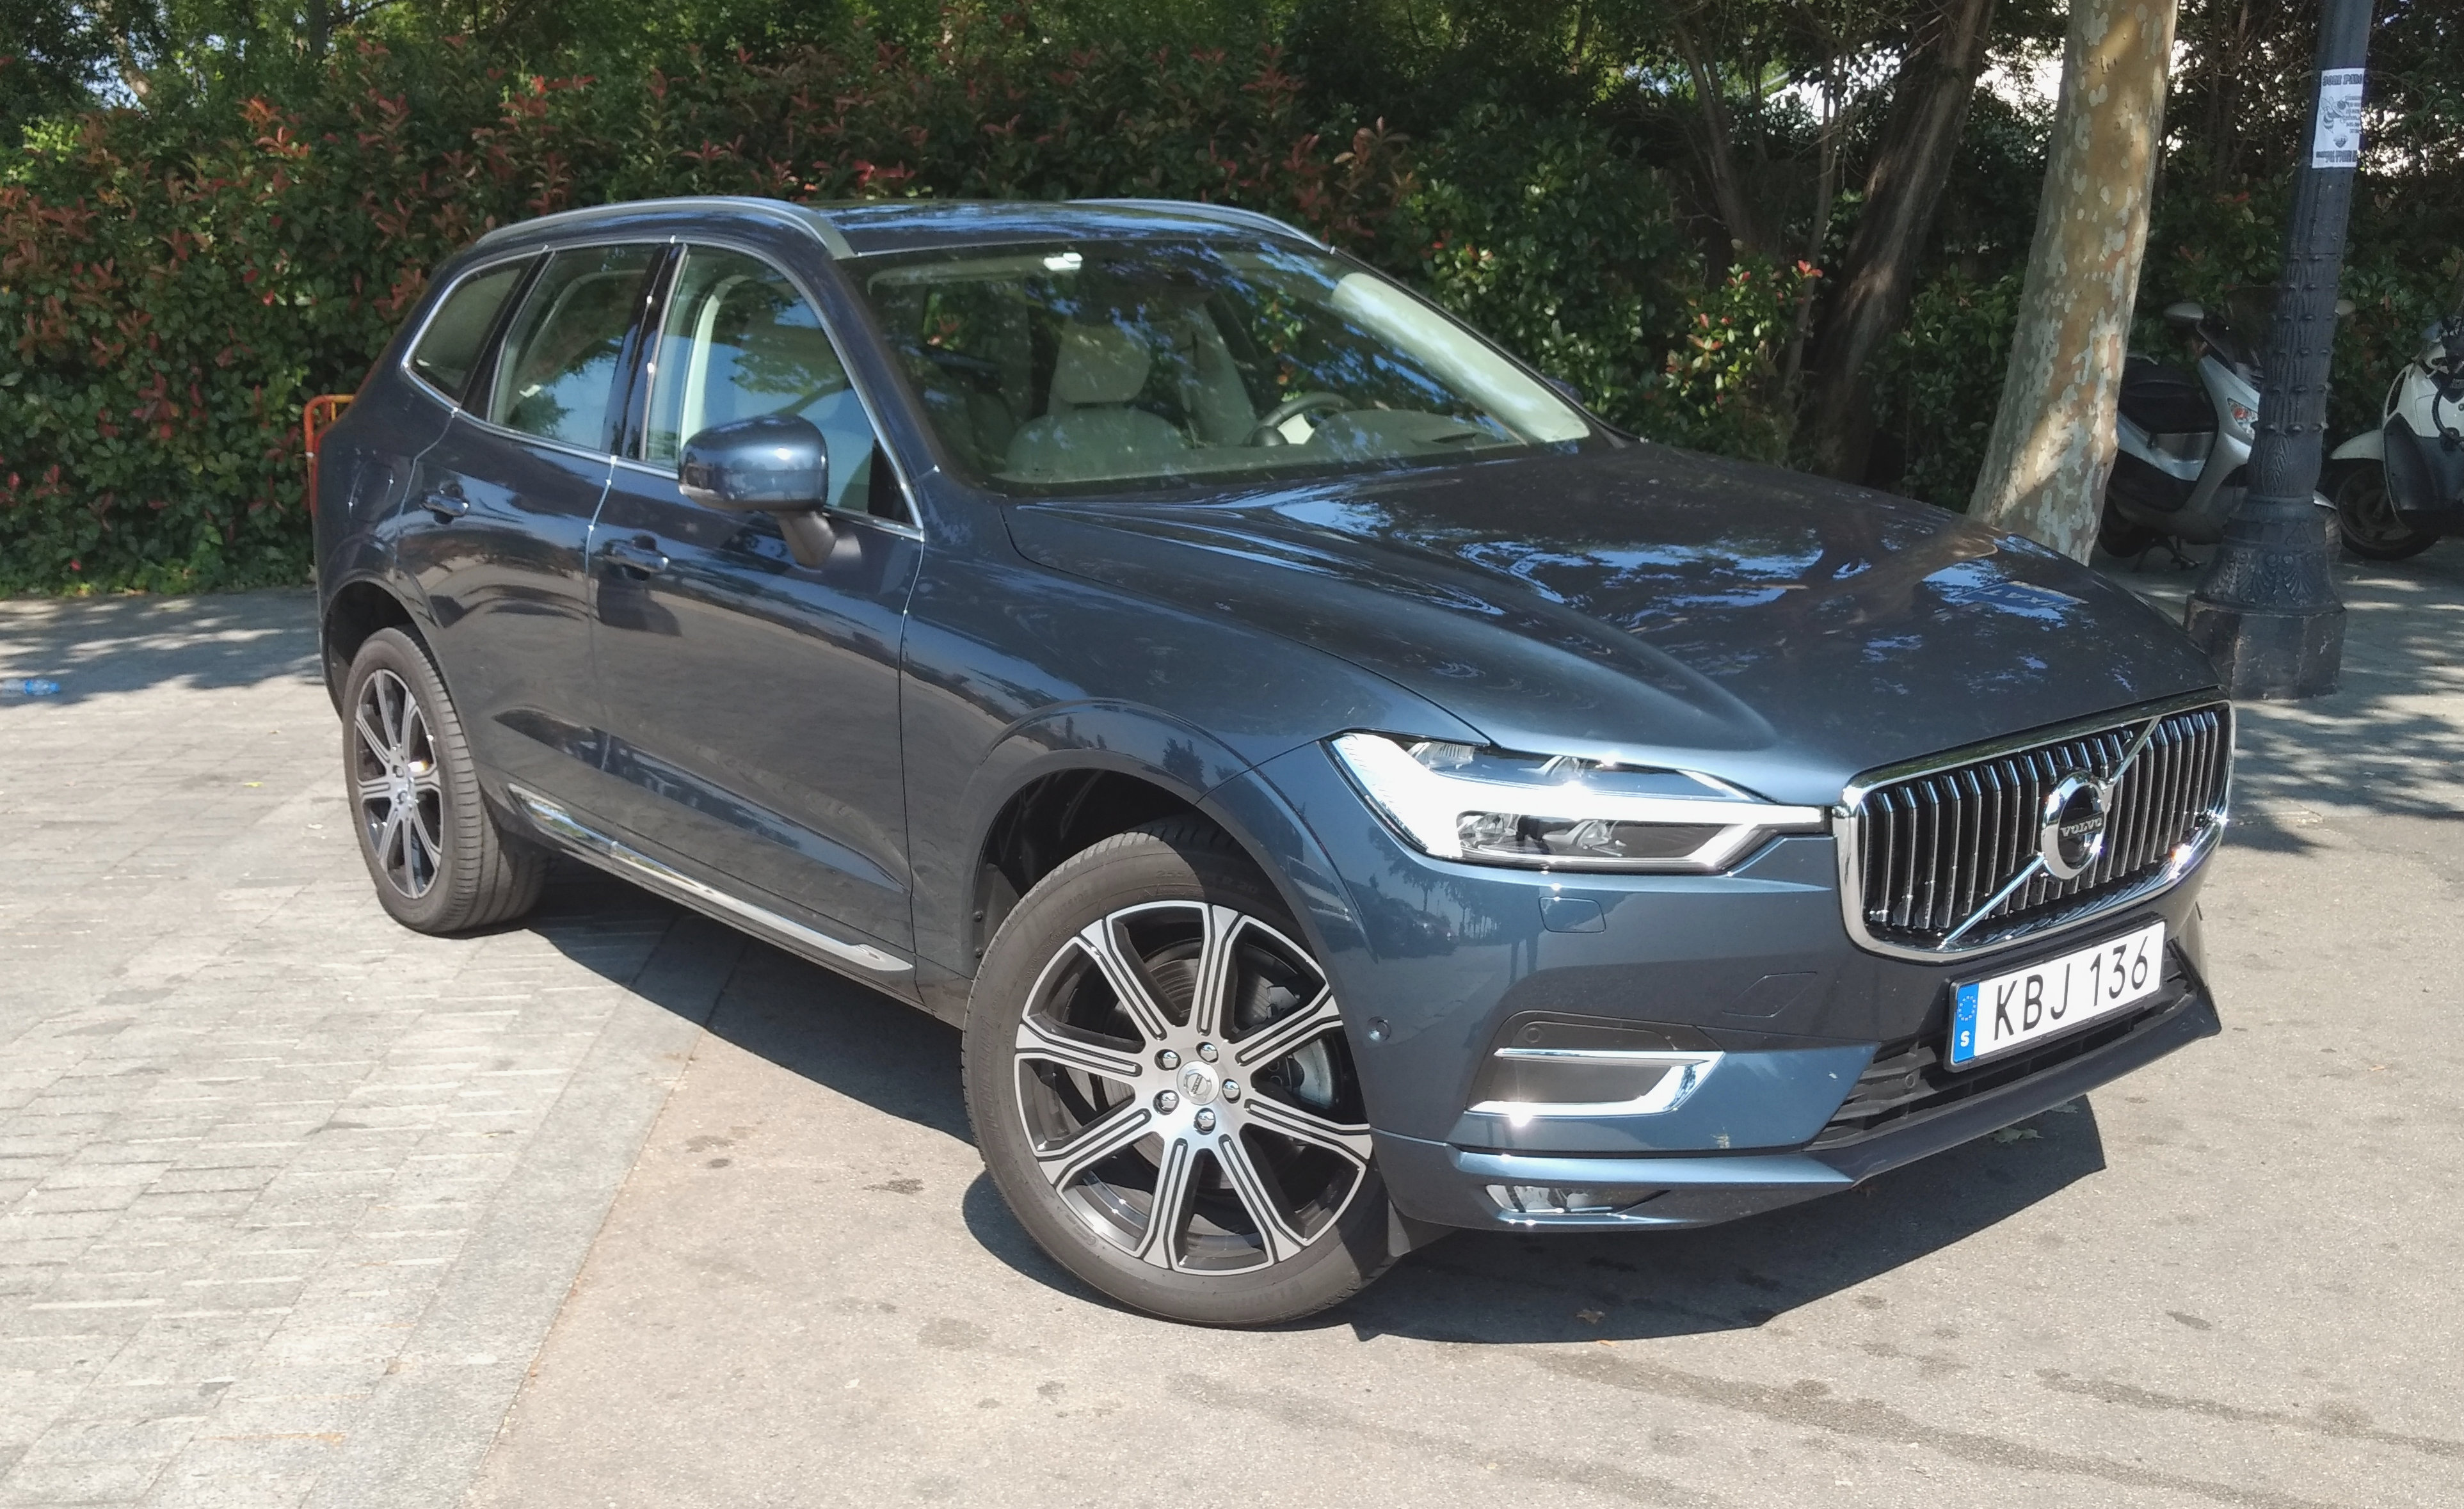 cars range available updated now price news za volvo co motoring pricing full